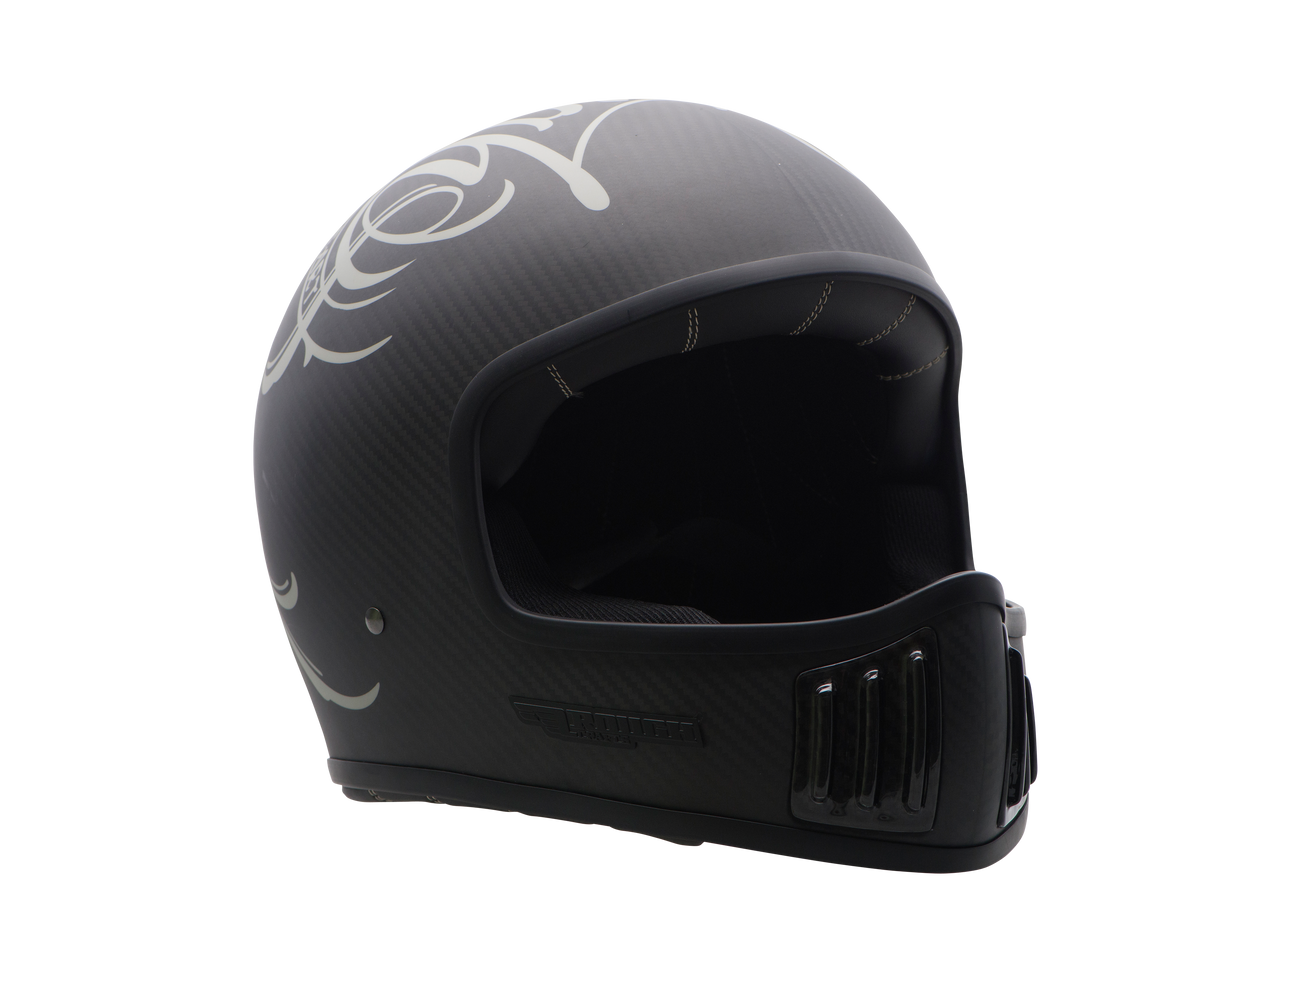 ROUGH CRAFTS REVOLATOR HELMET- Center Roots